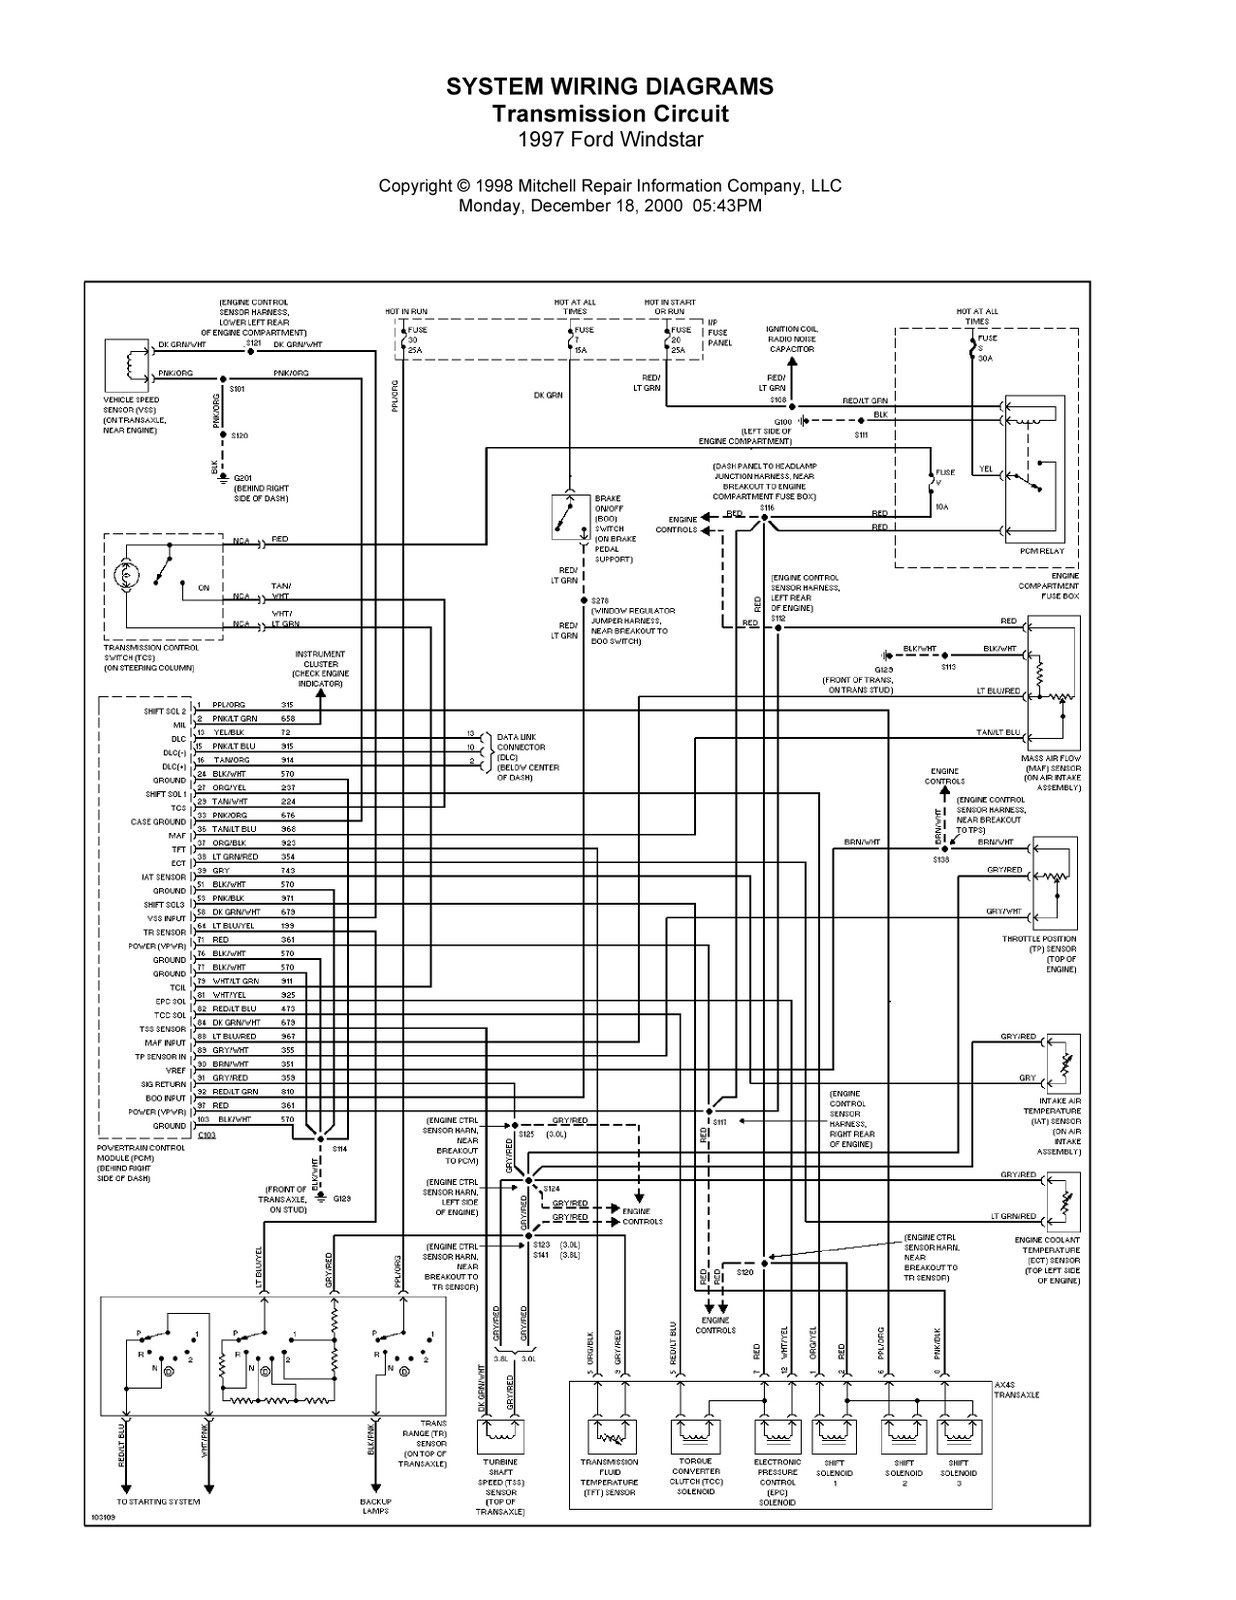 Folkcallim Blog Archive Wiring Diagrams For Ford Windstar